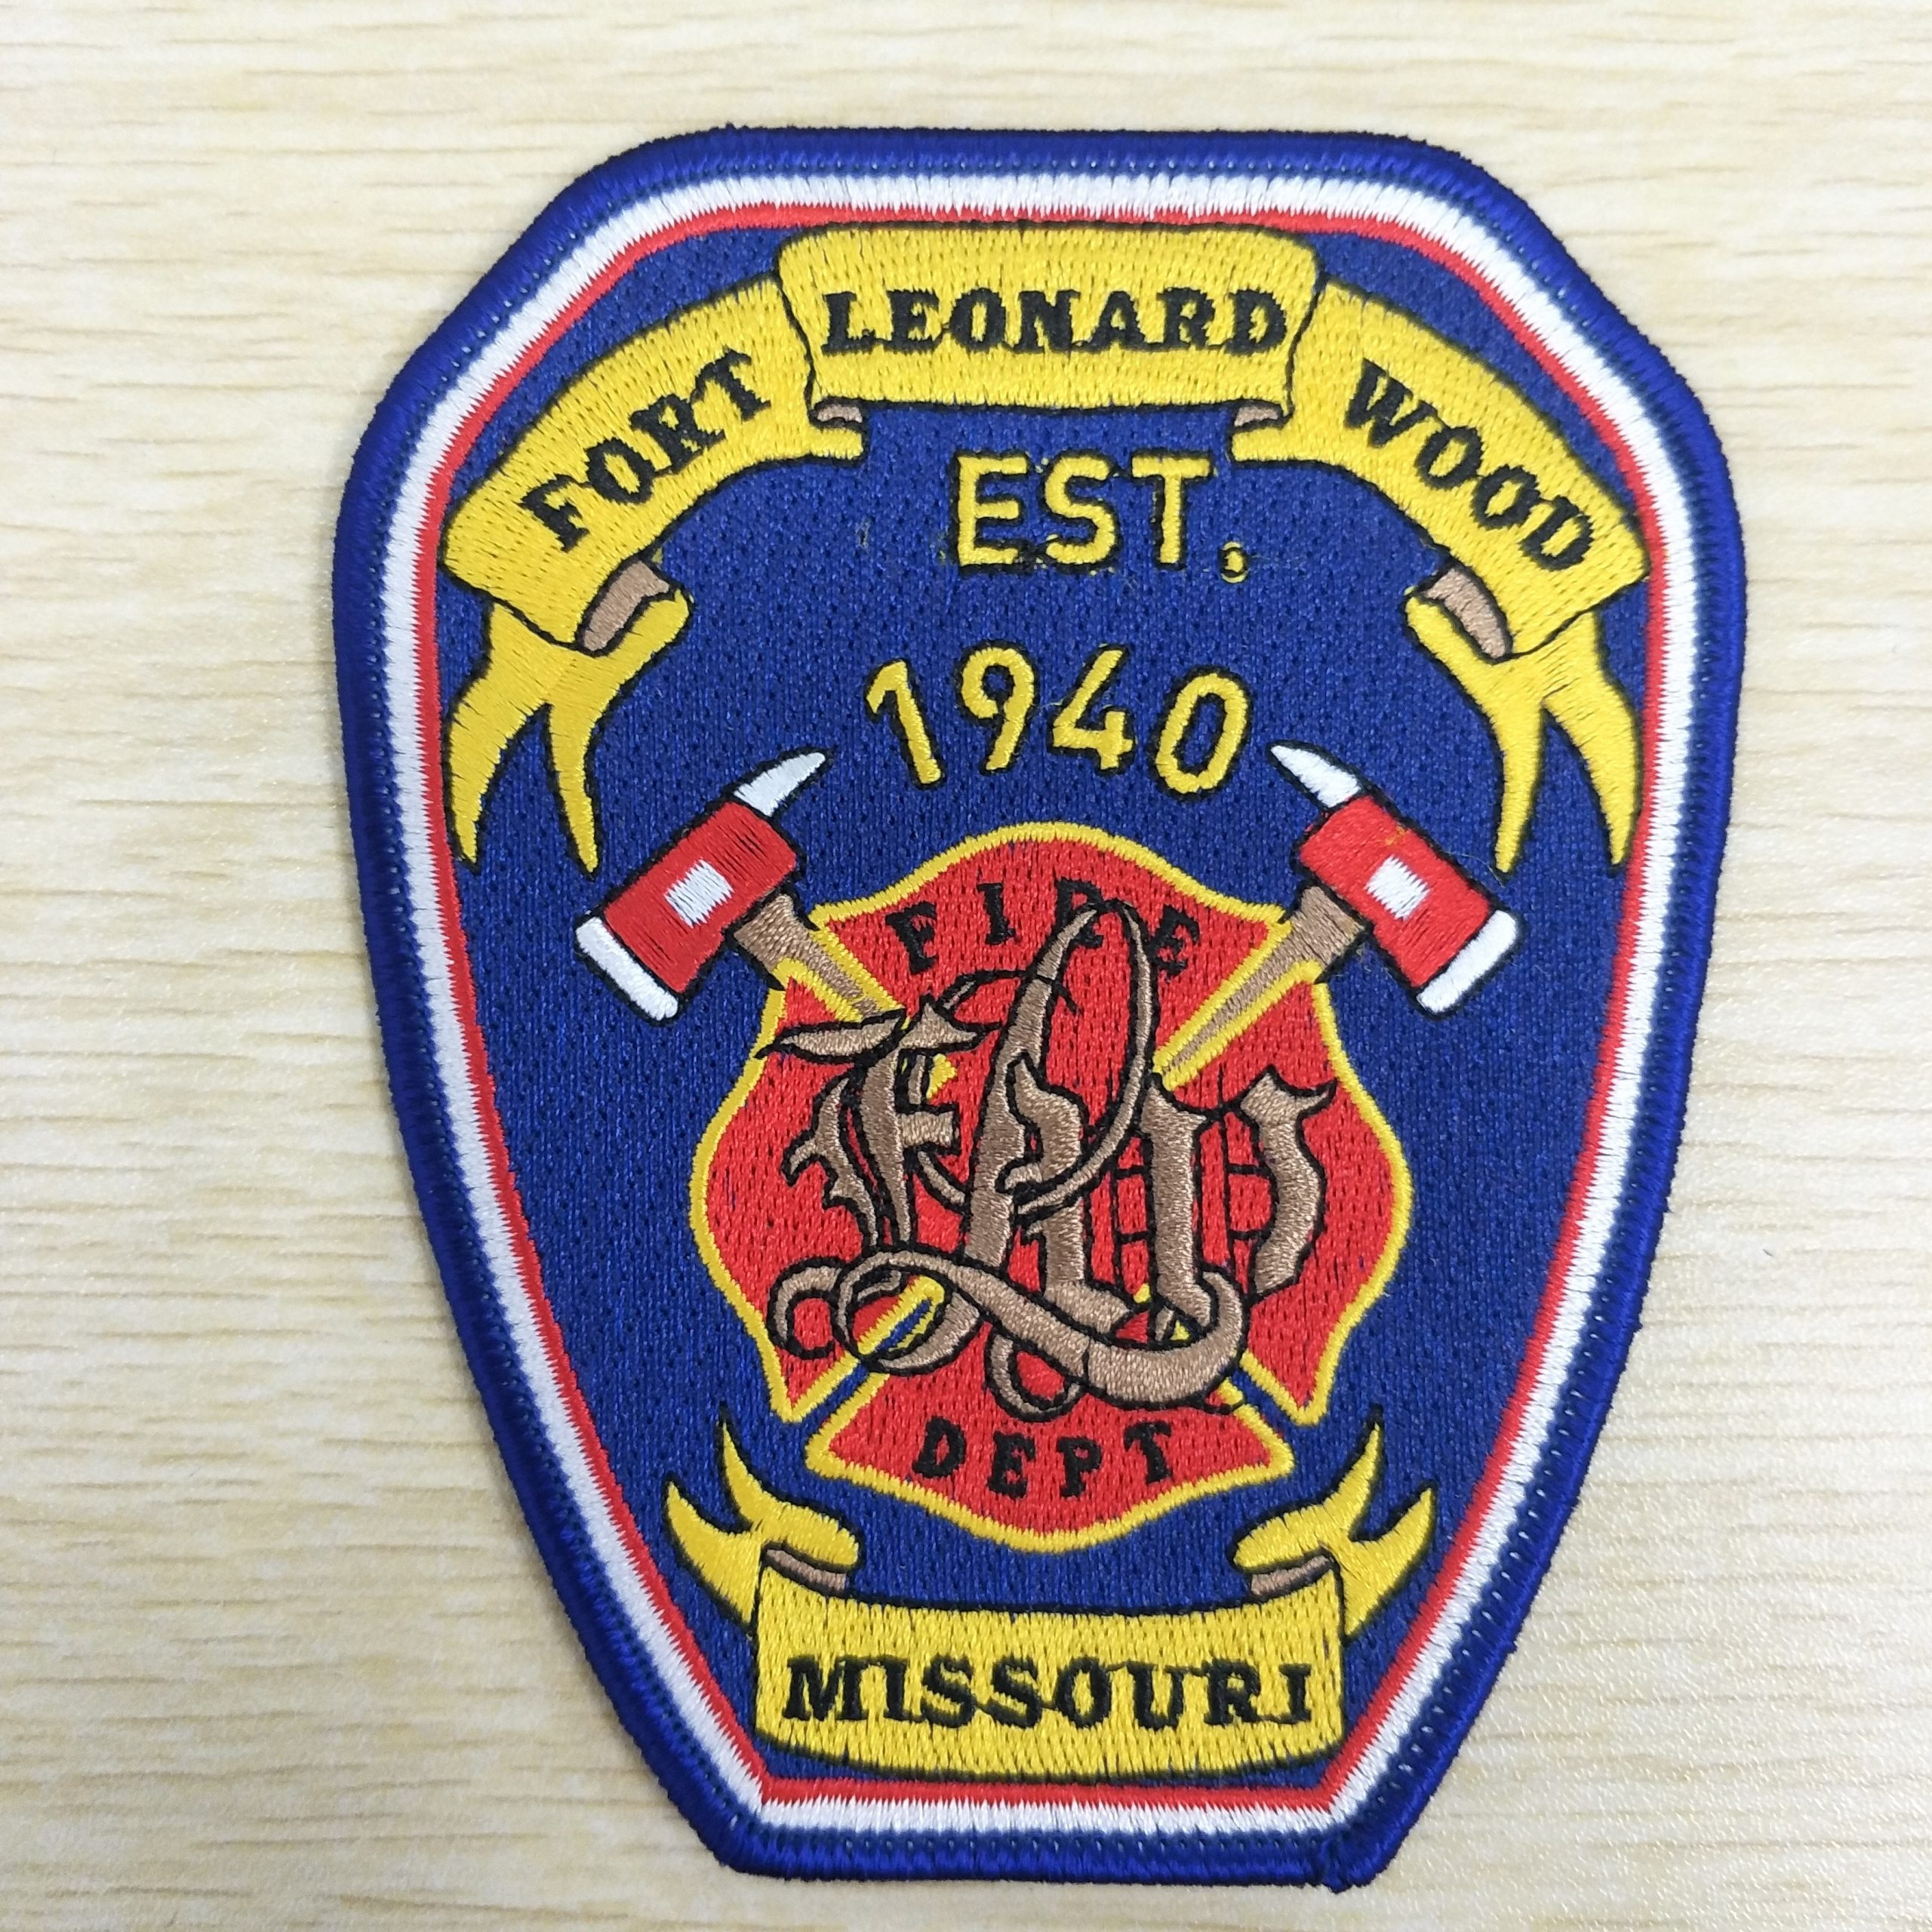 Fire Department Brand Embroidery Badge,Embroidery Patches at customized logo